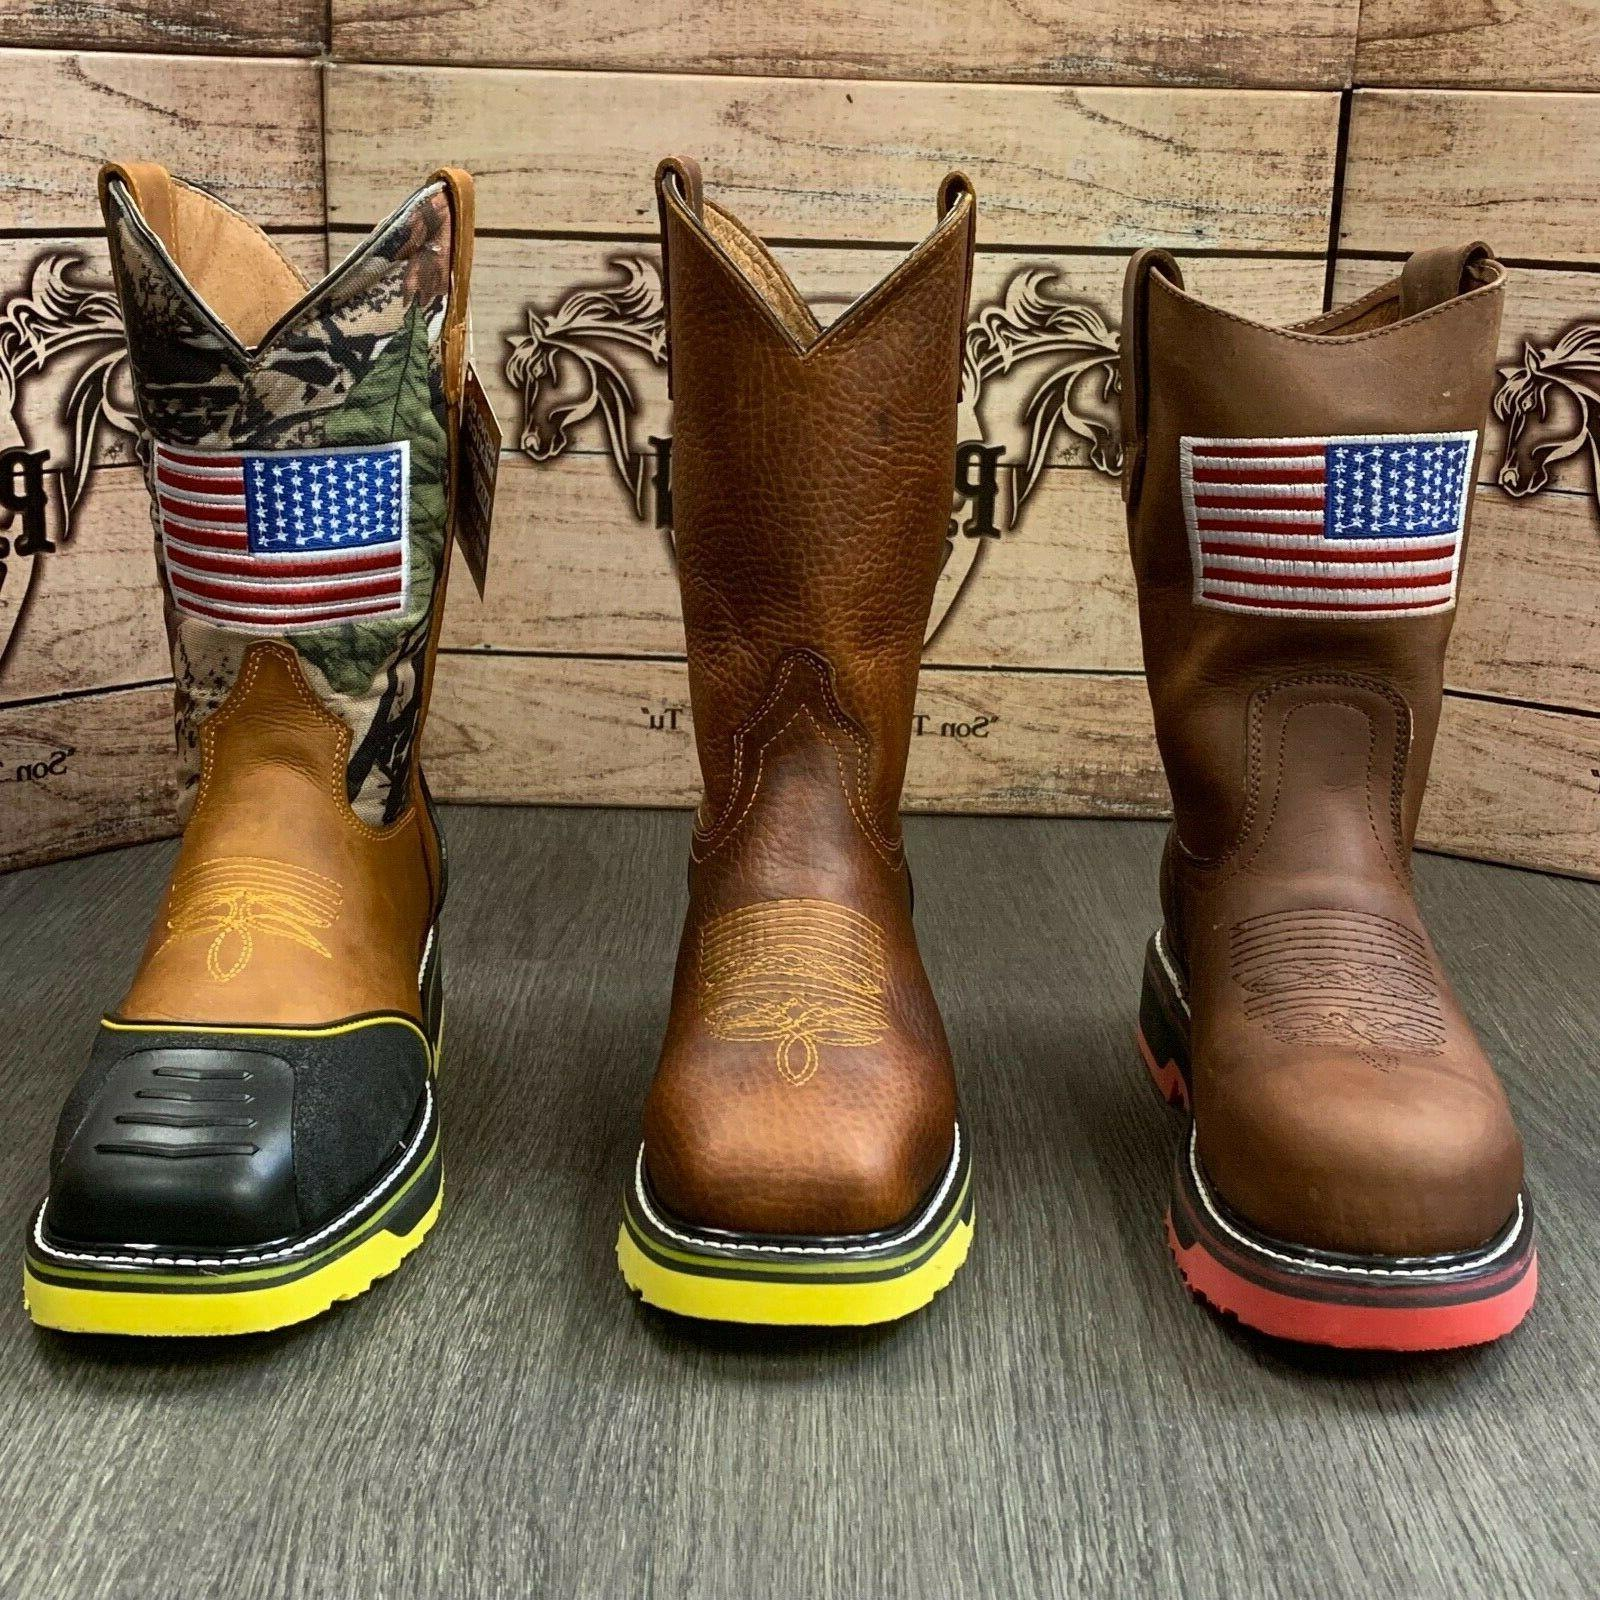 MEN'S STEEL TOE BOOTS AMERICAN STYLE SOFT LEATHER INSIDE SHAFT SAFETY